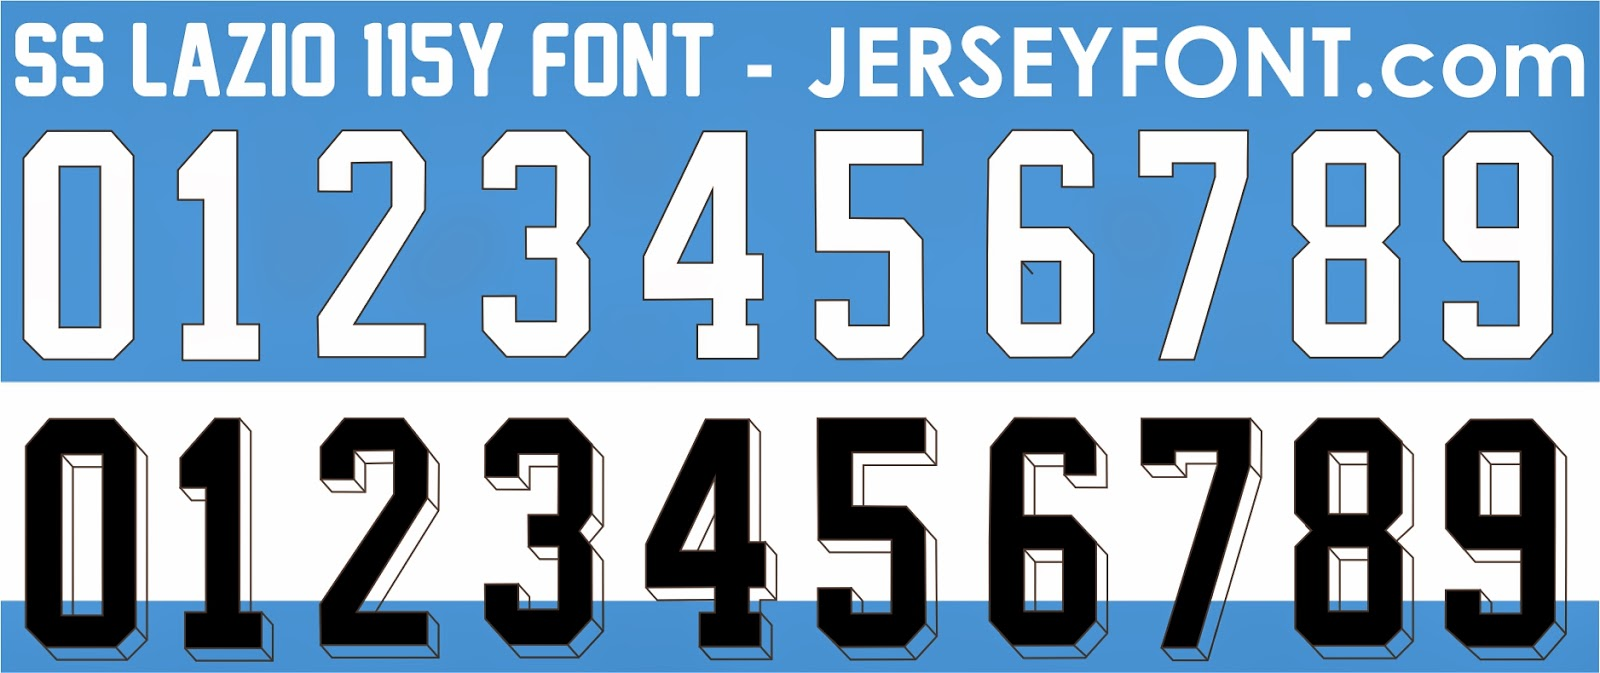 Jersey Font Download